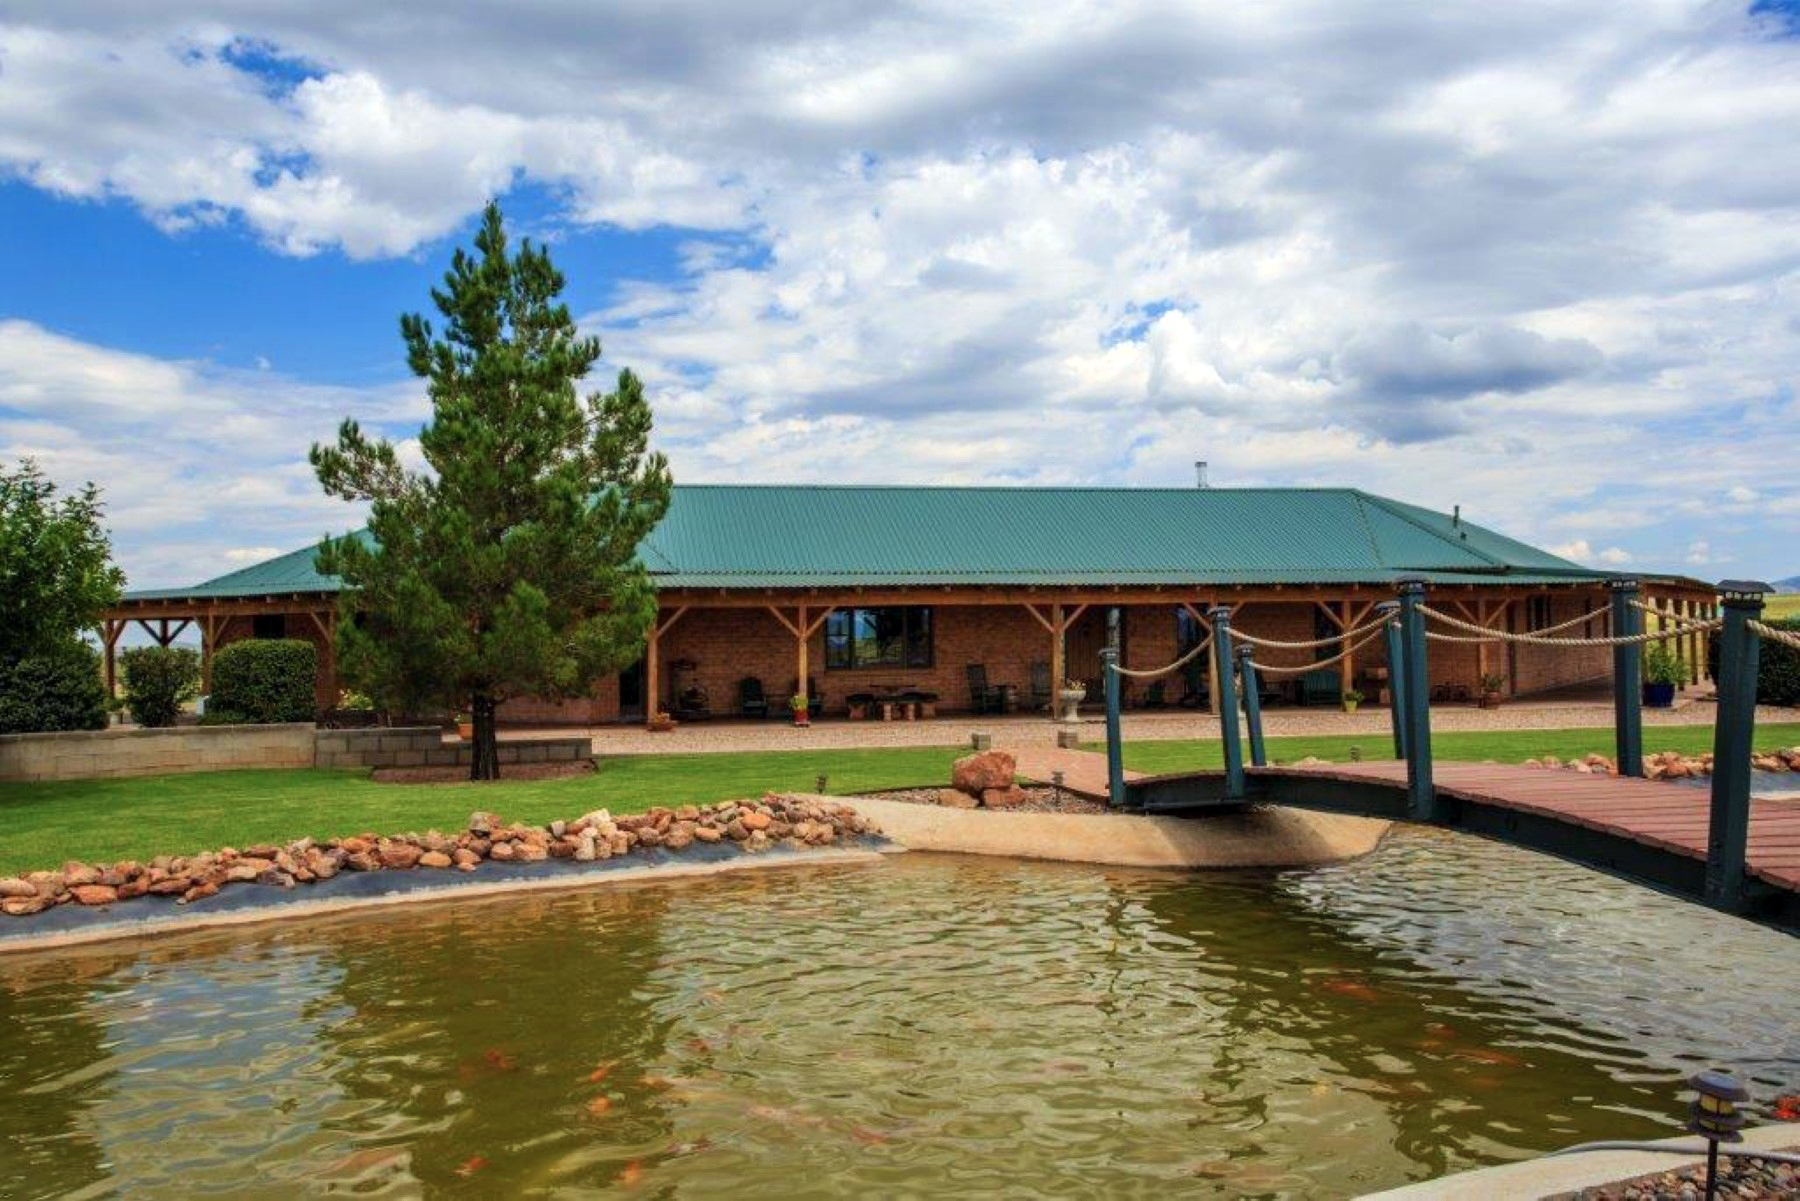 Property For Sale at Spectacular Property Offering Supreme Southwestern Living on 25+ Acres